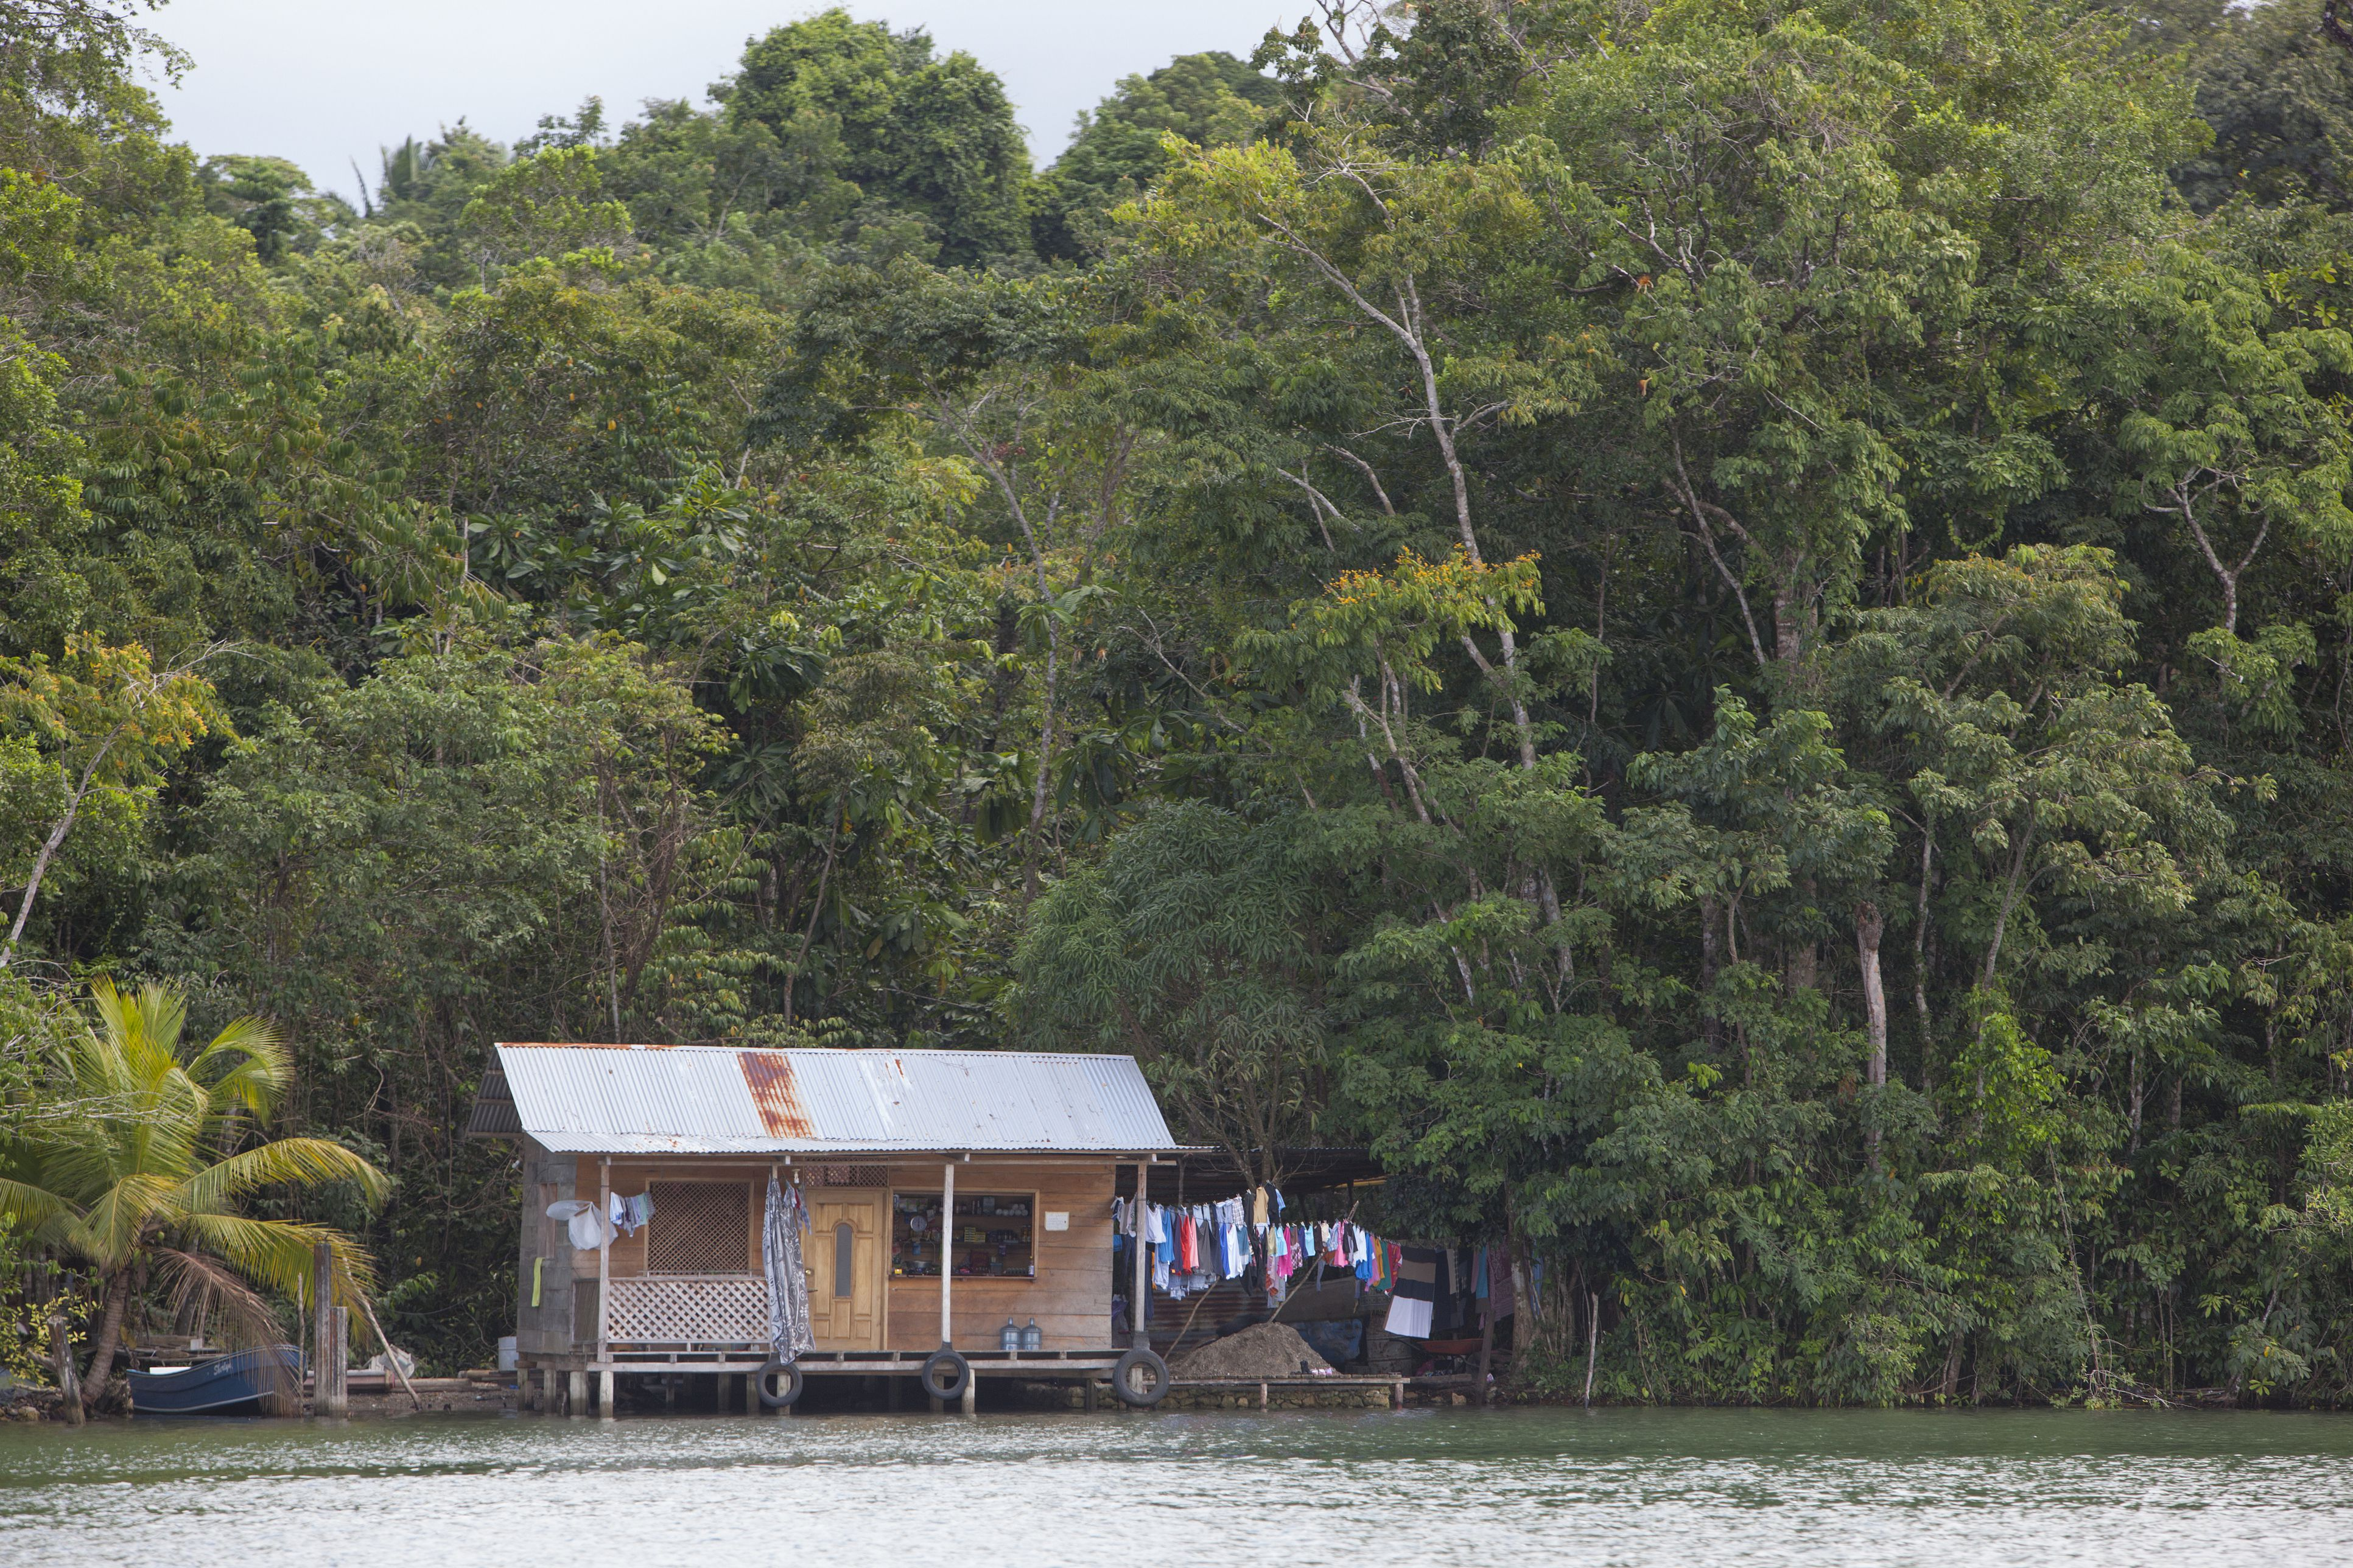 Small wooden houses on the Rio Dulce